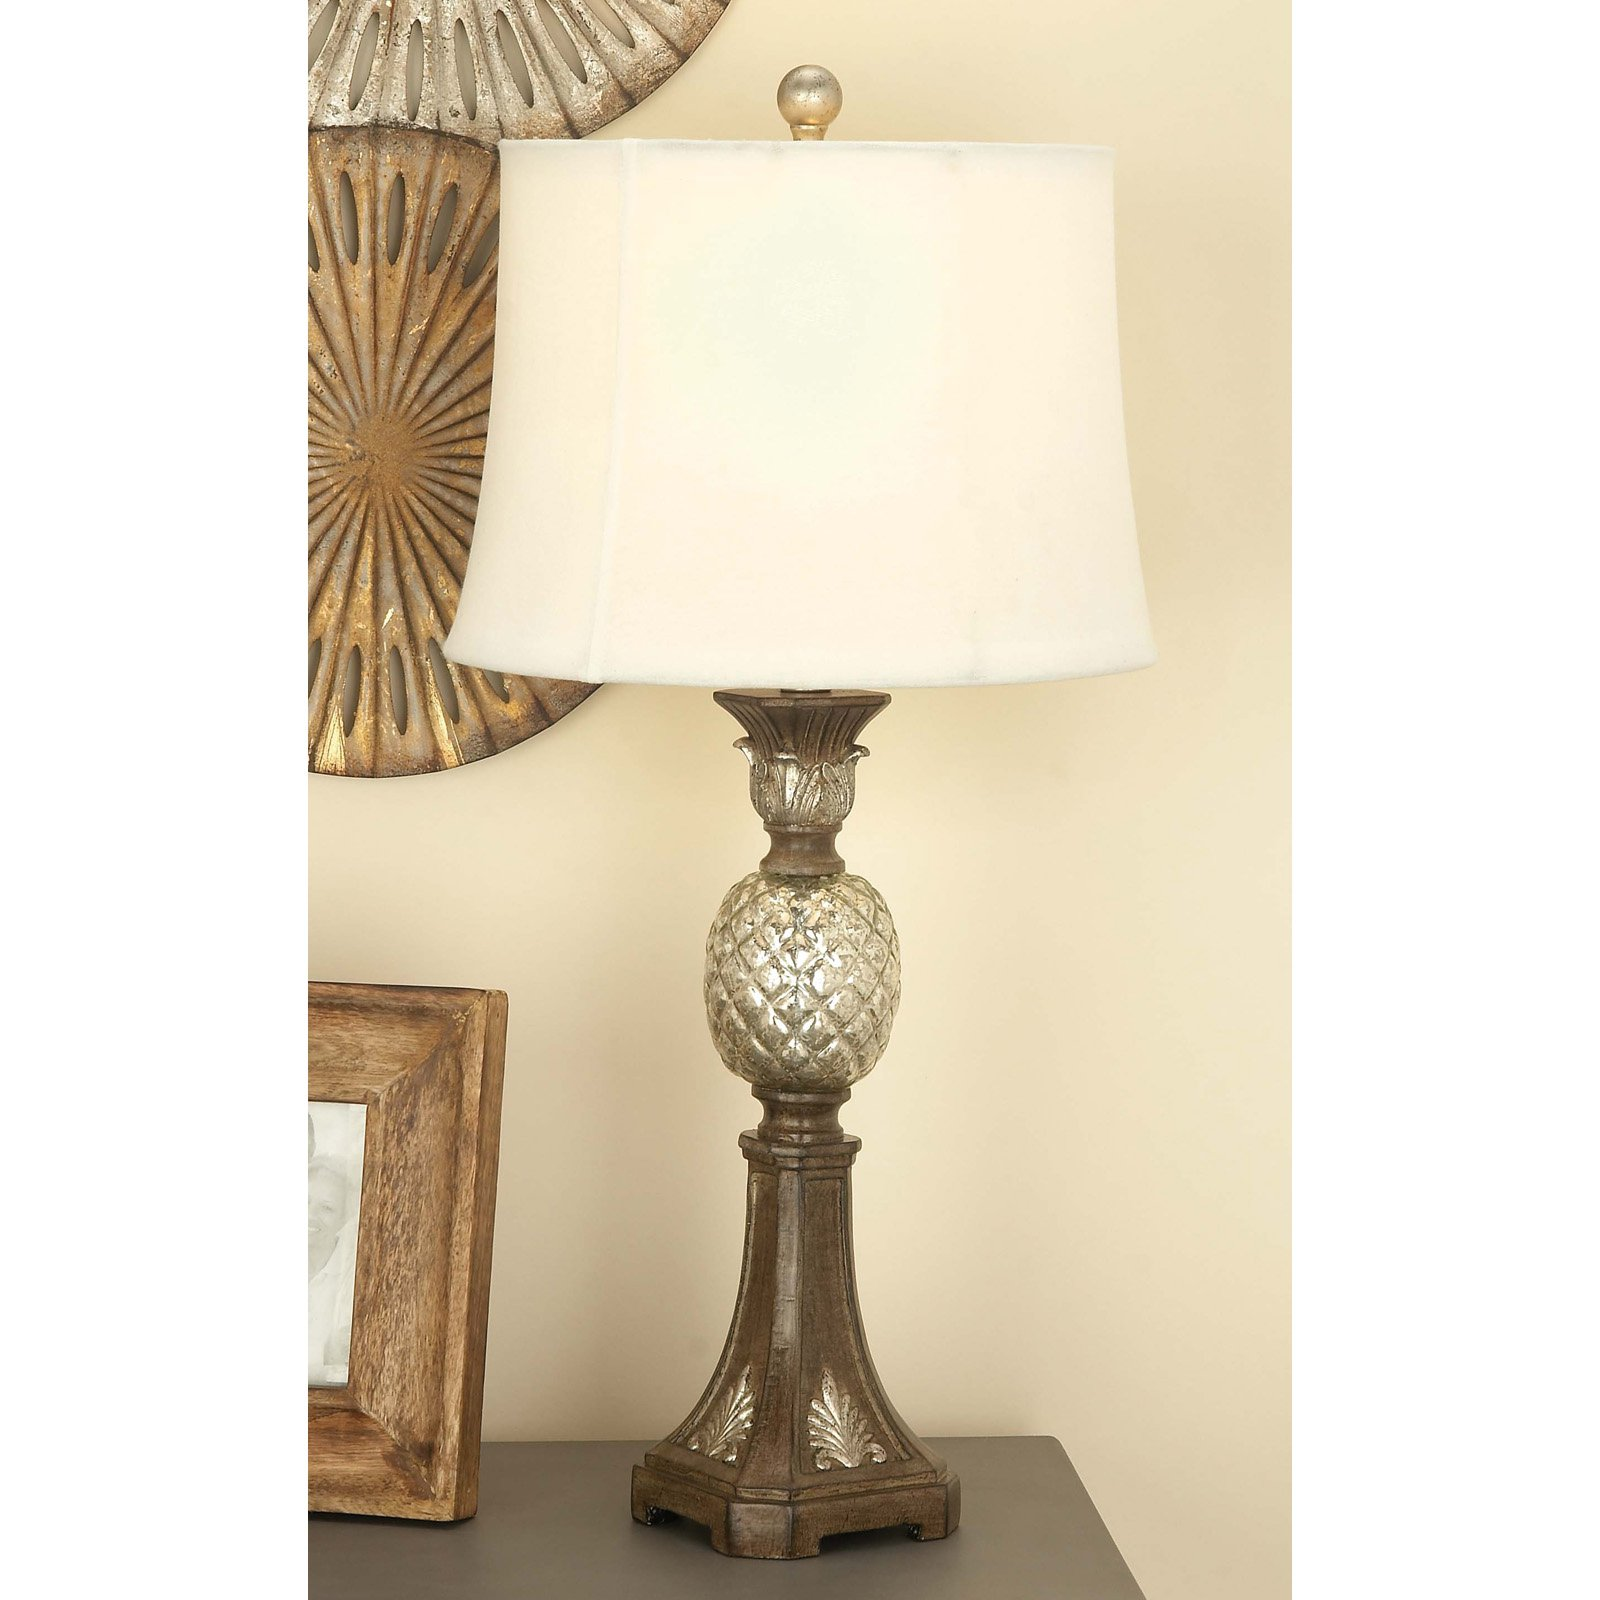 Decmode Traditional Pineapple Table Lamp 78495 Set Of 2 With